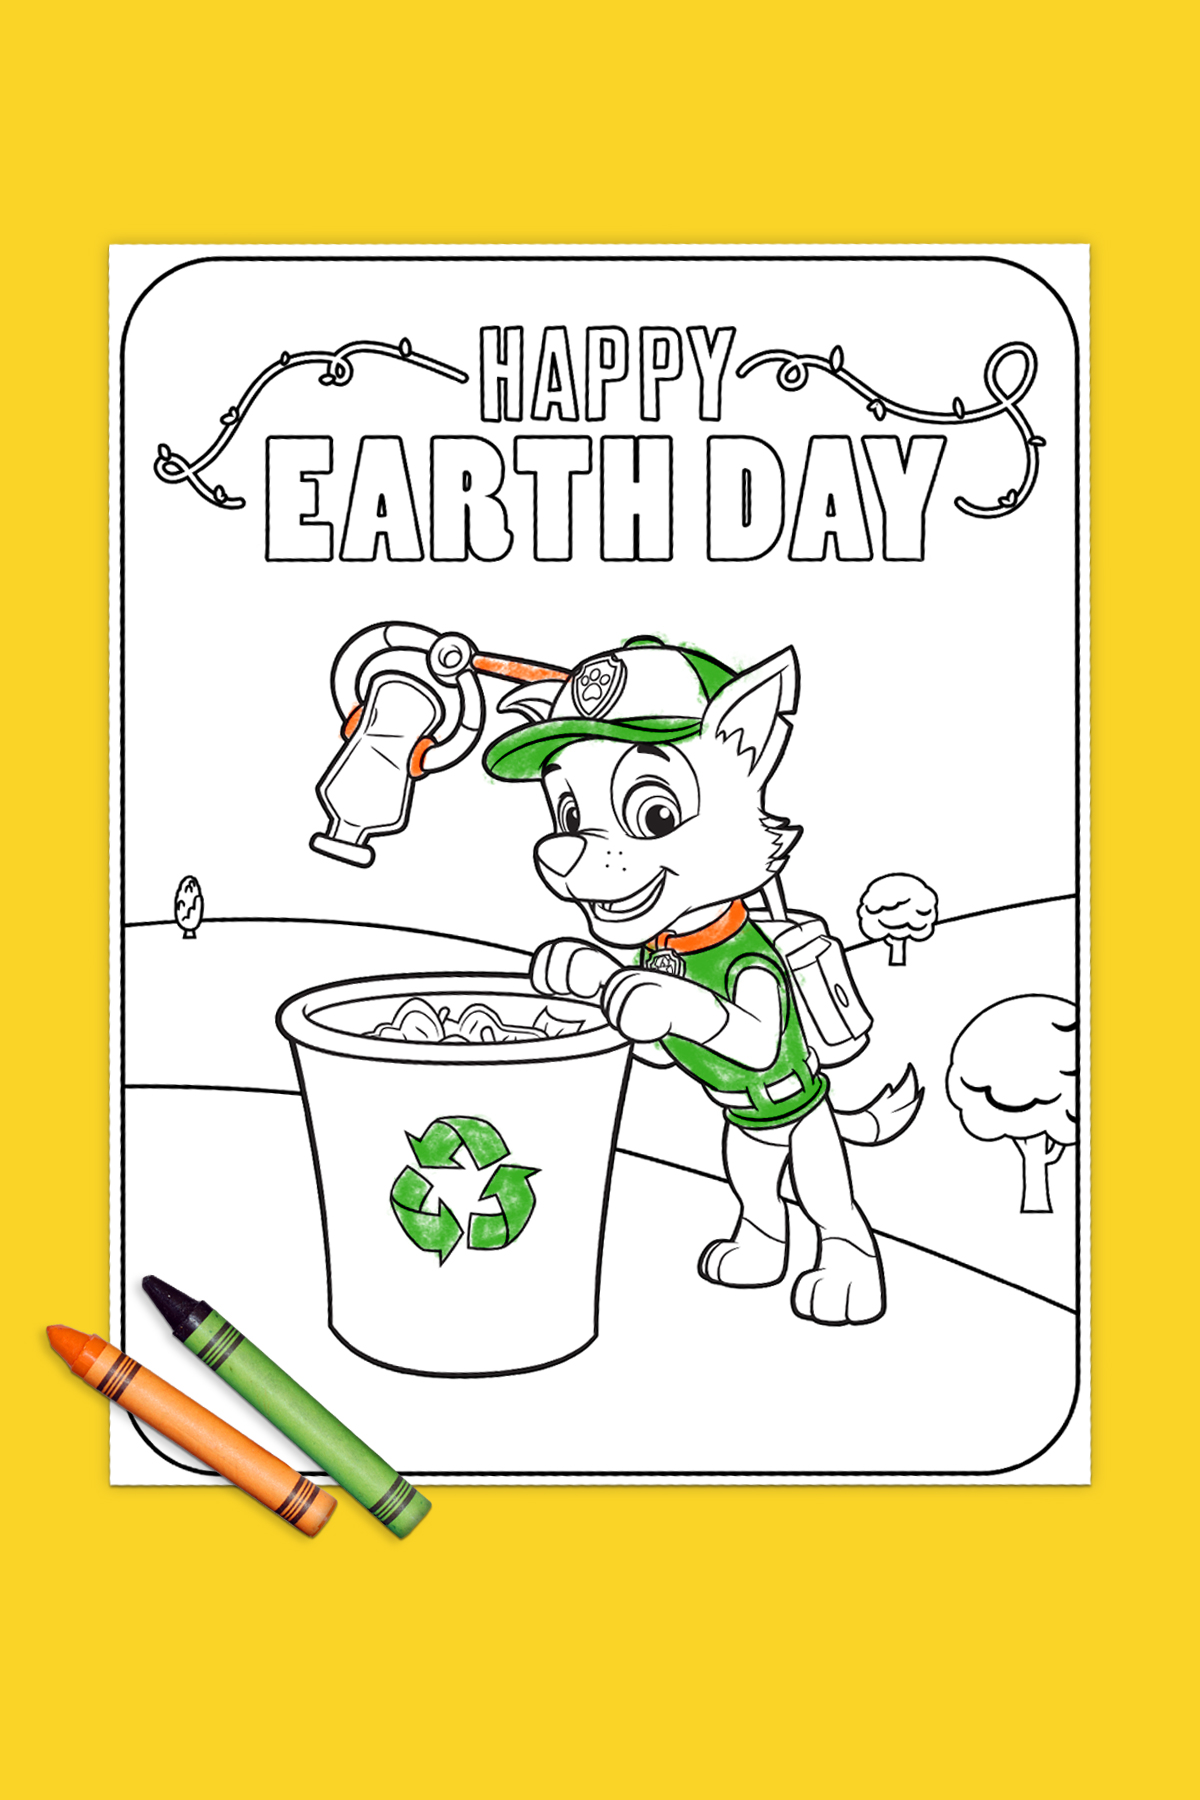 PAW Patrol Rocky Earth Day Coloring Page | Nickelodeon Parents